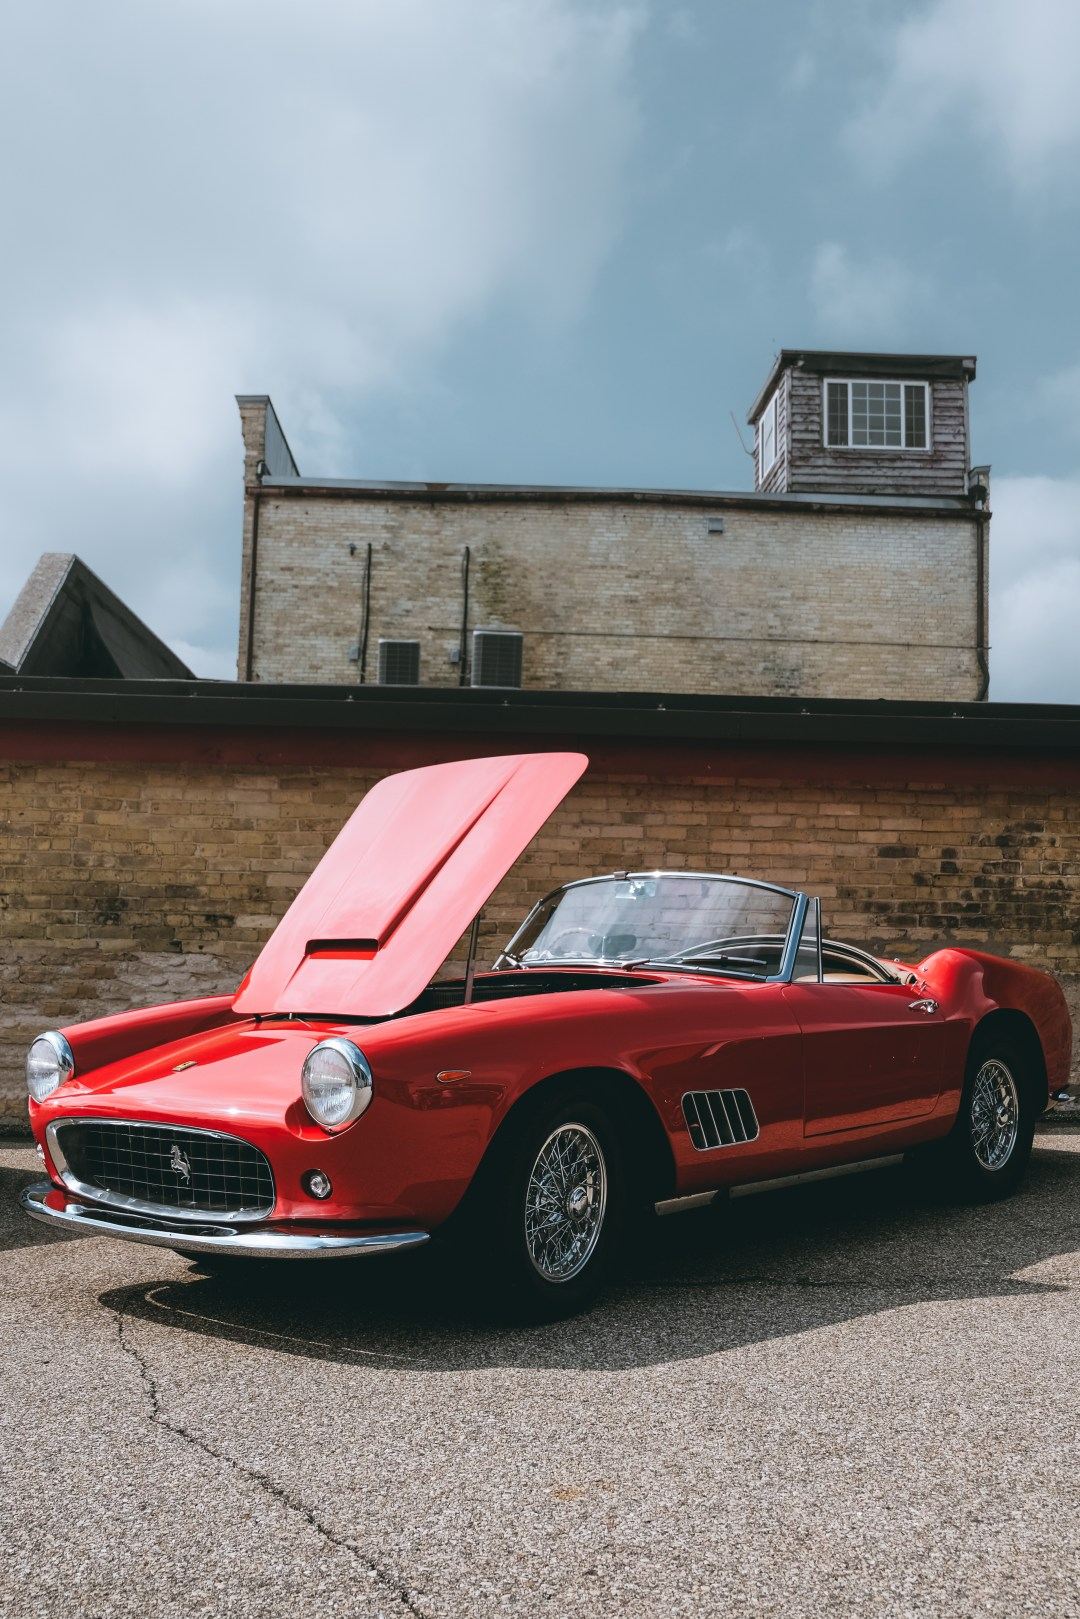 27+ Classic Car Pictures | Download Free Images on Unsplash